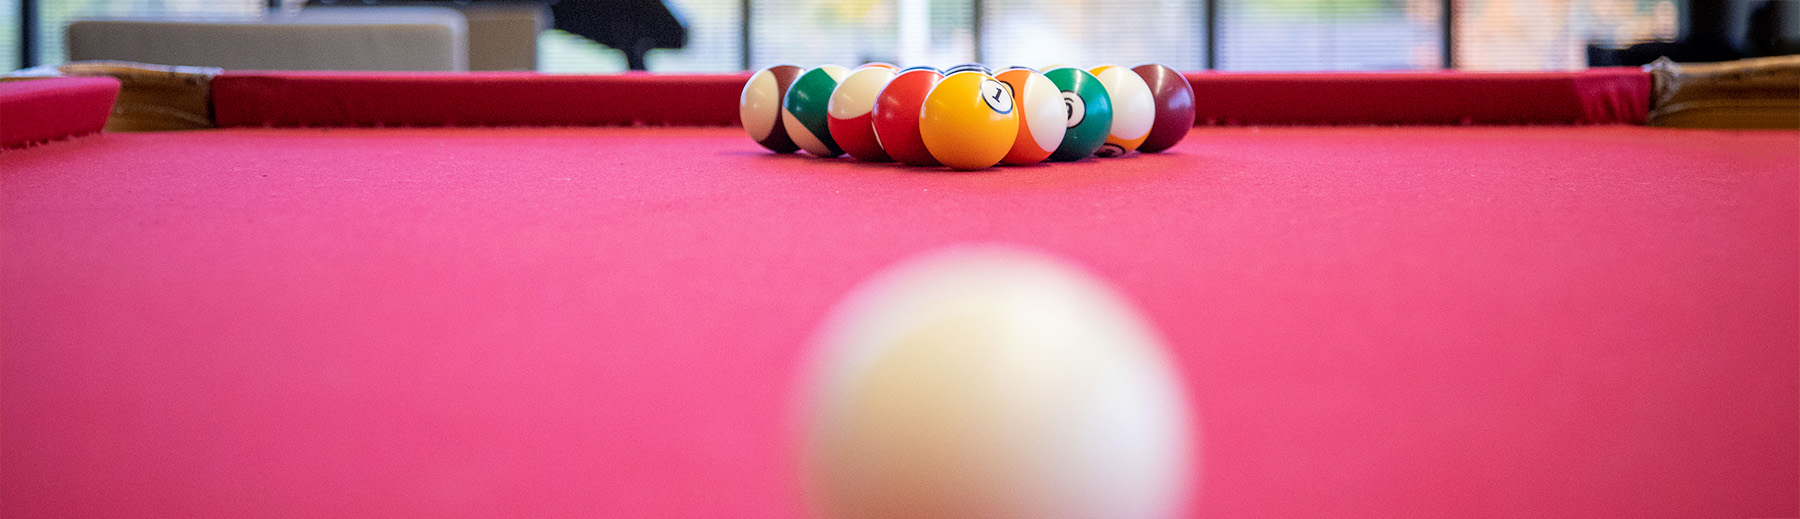 Billiard balls set up on a red billards table